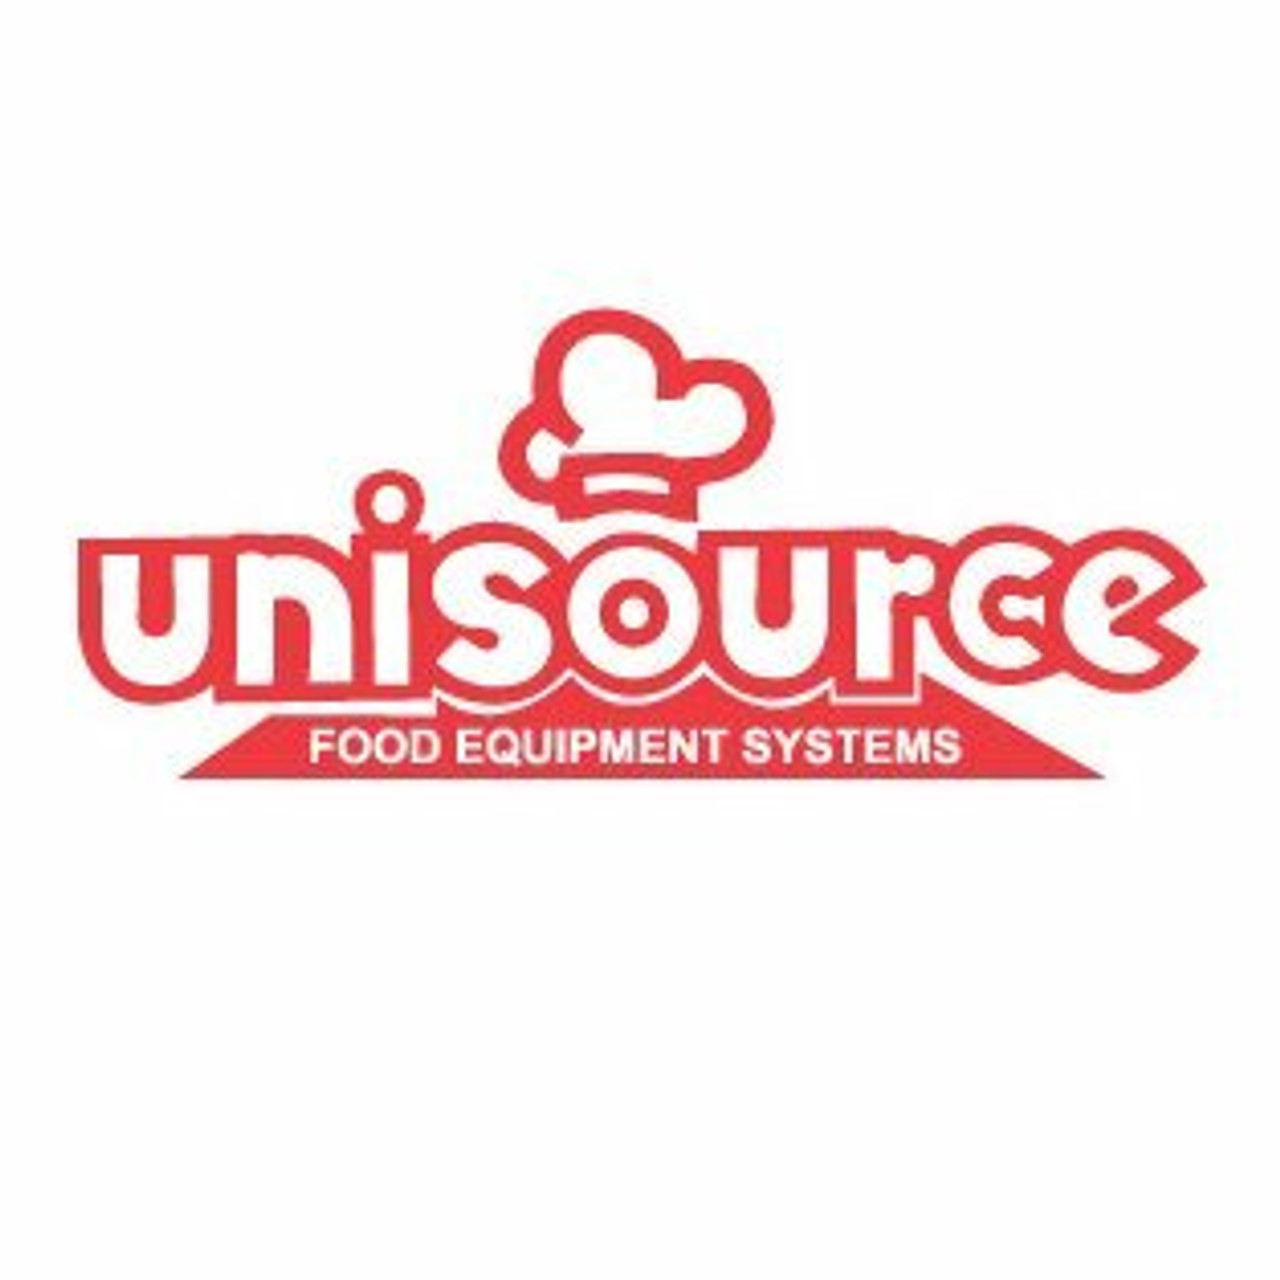 Unisource Food Equipment